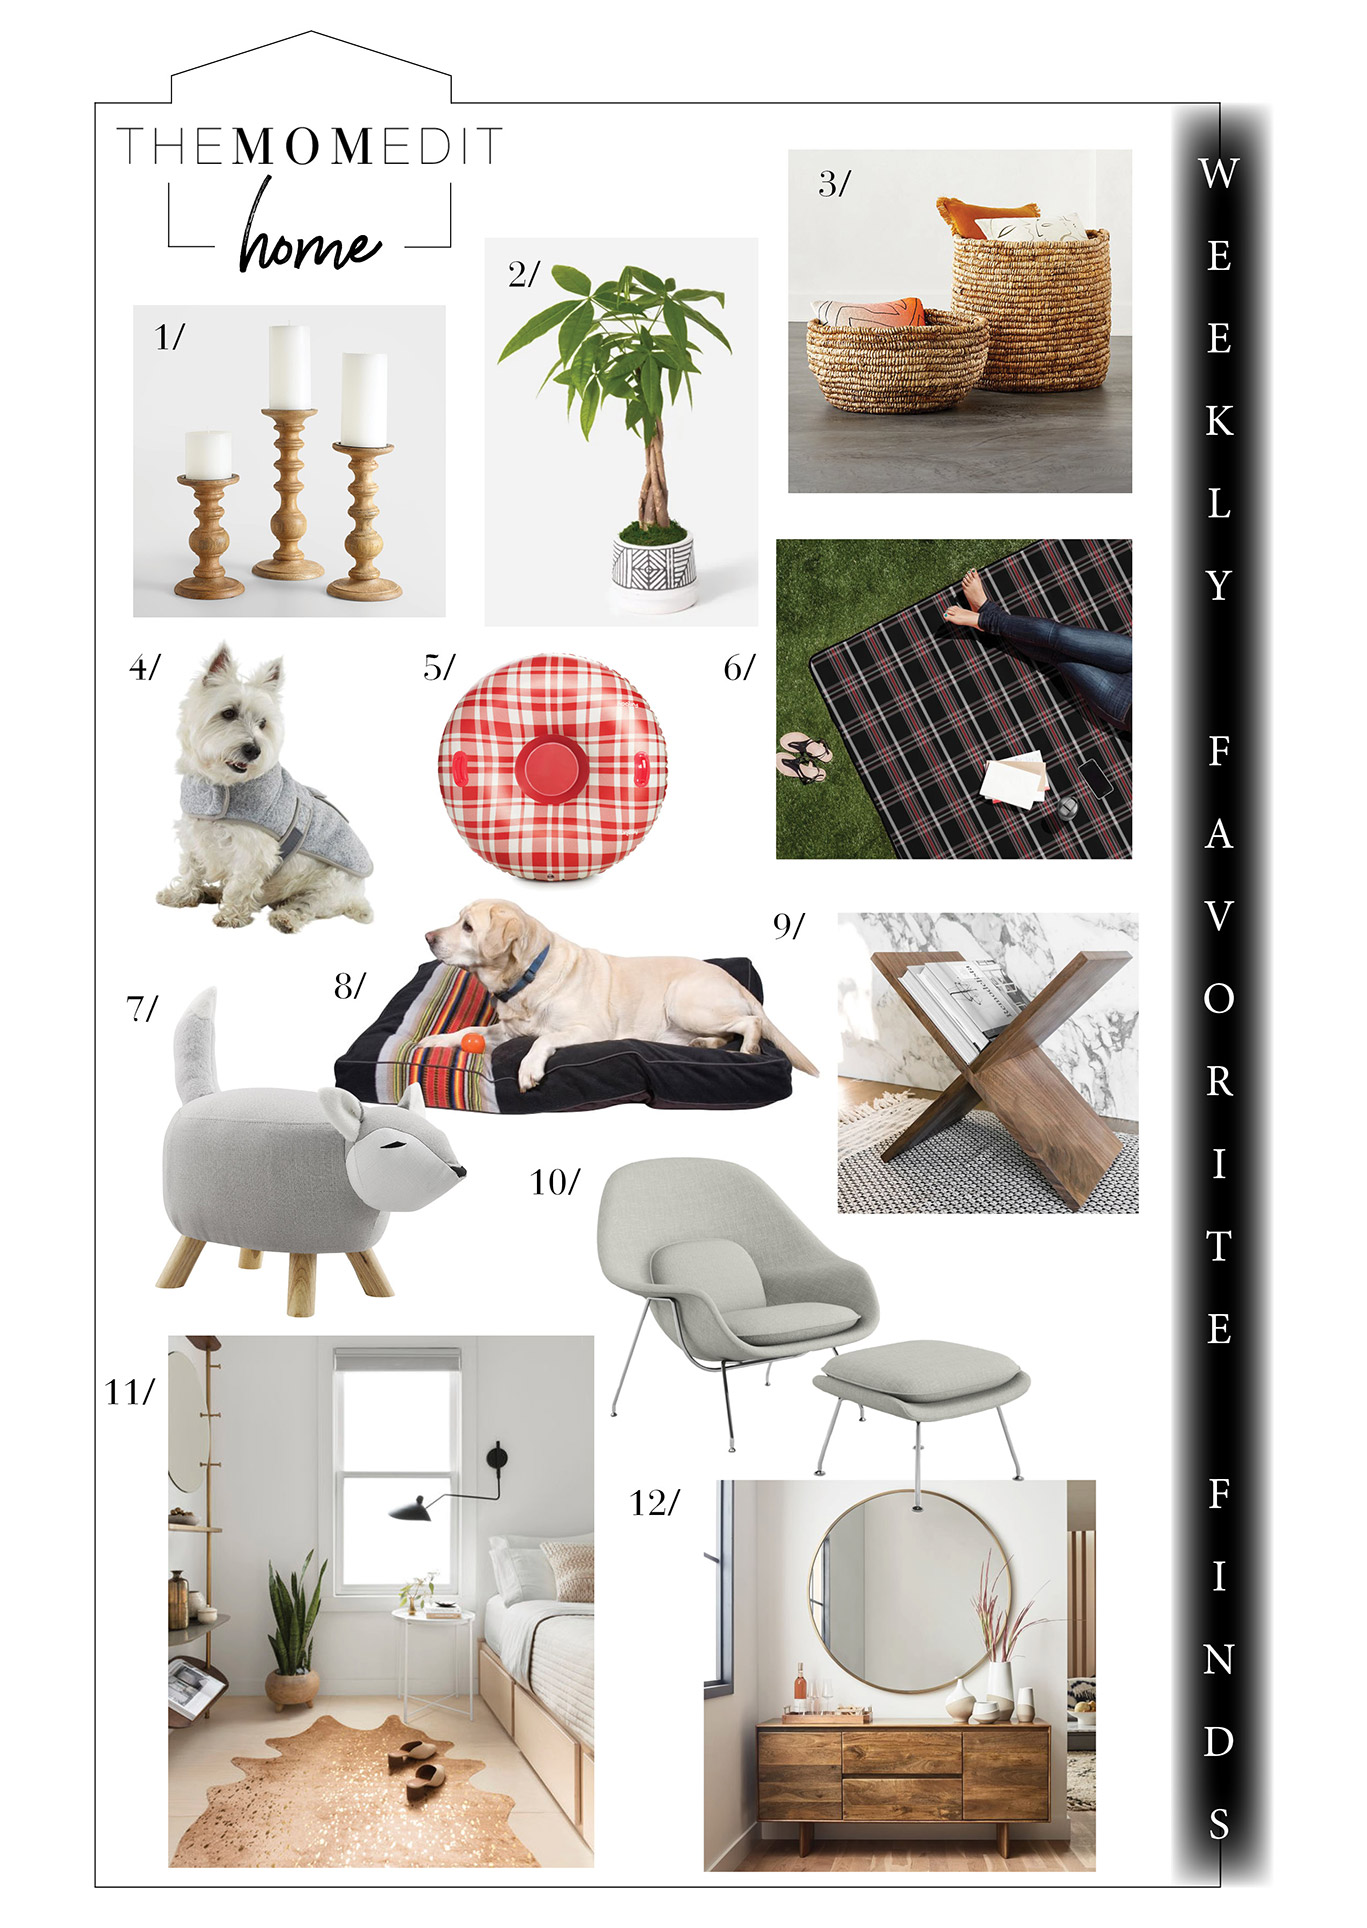 We're shopping little miracles for the home, plus post-holiday sales (Pottery Barn, West Elm, Crate & Barrel) & pining to dine at Extra Virgin.